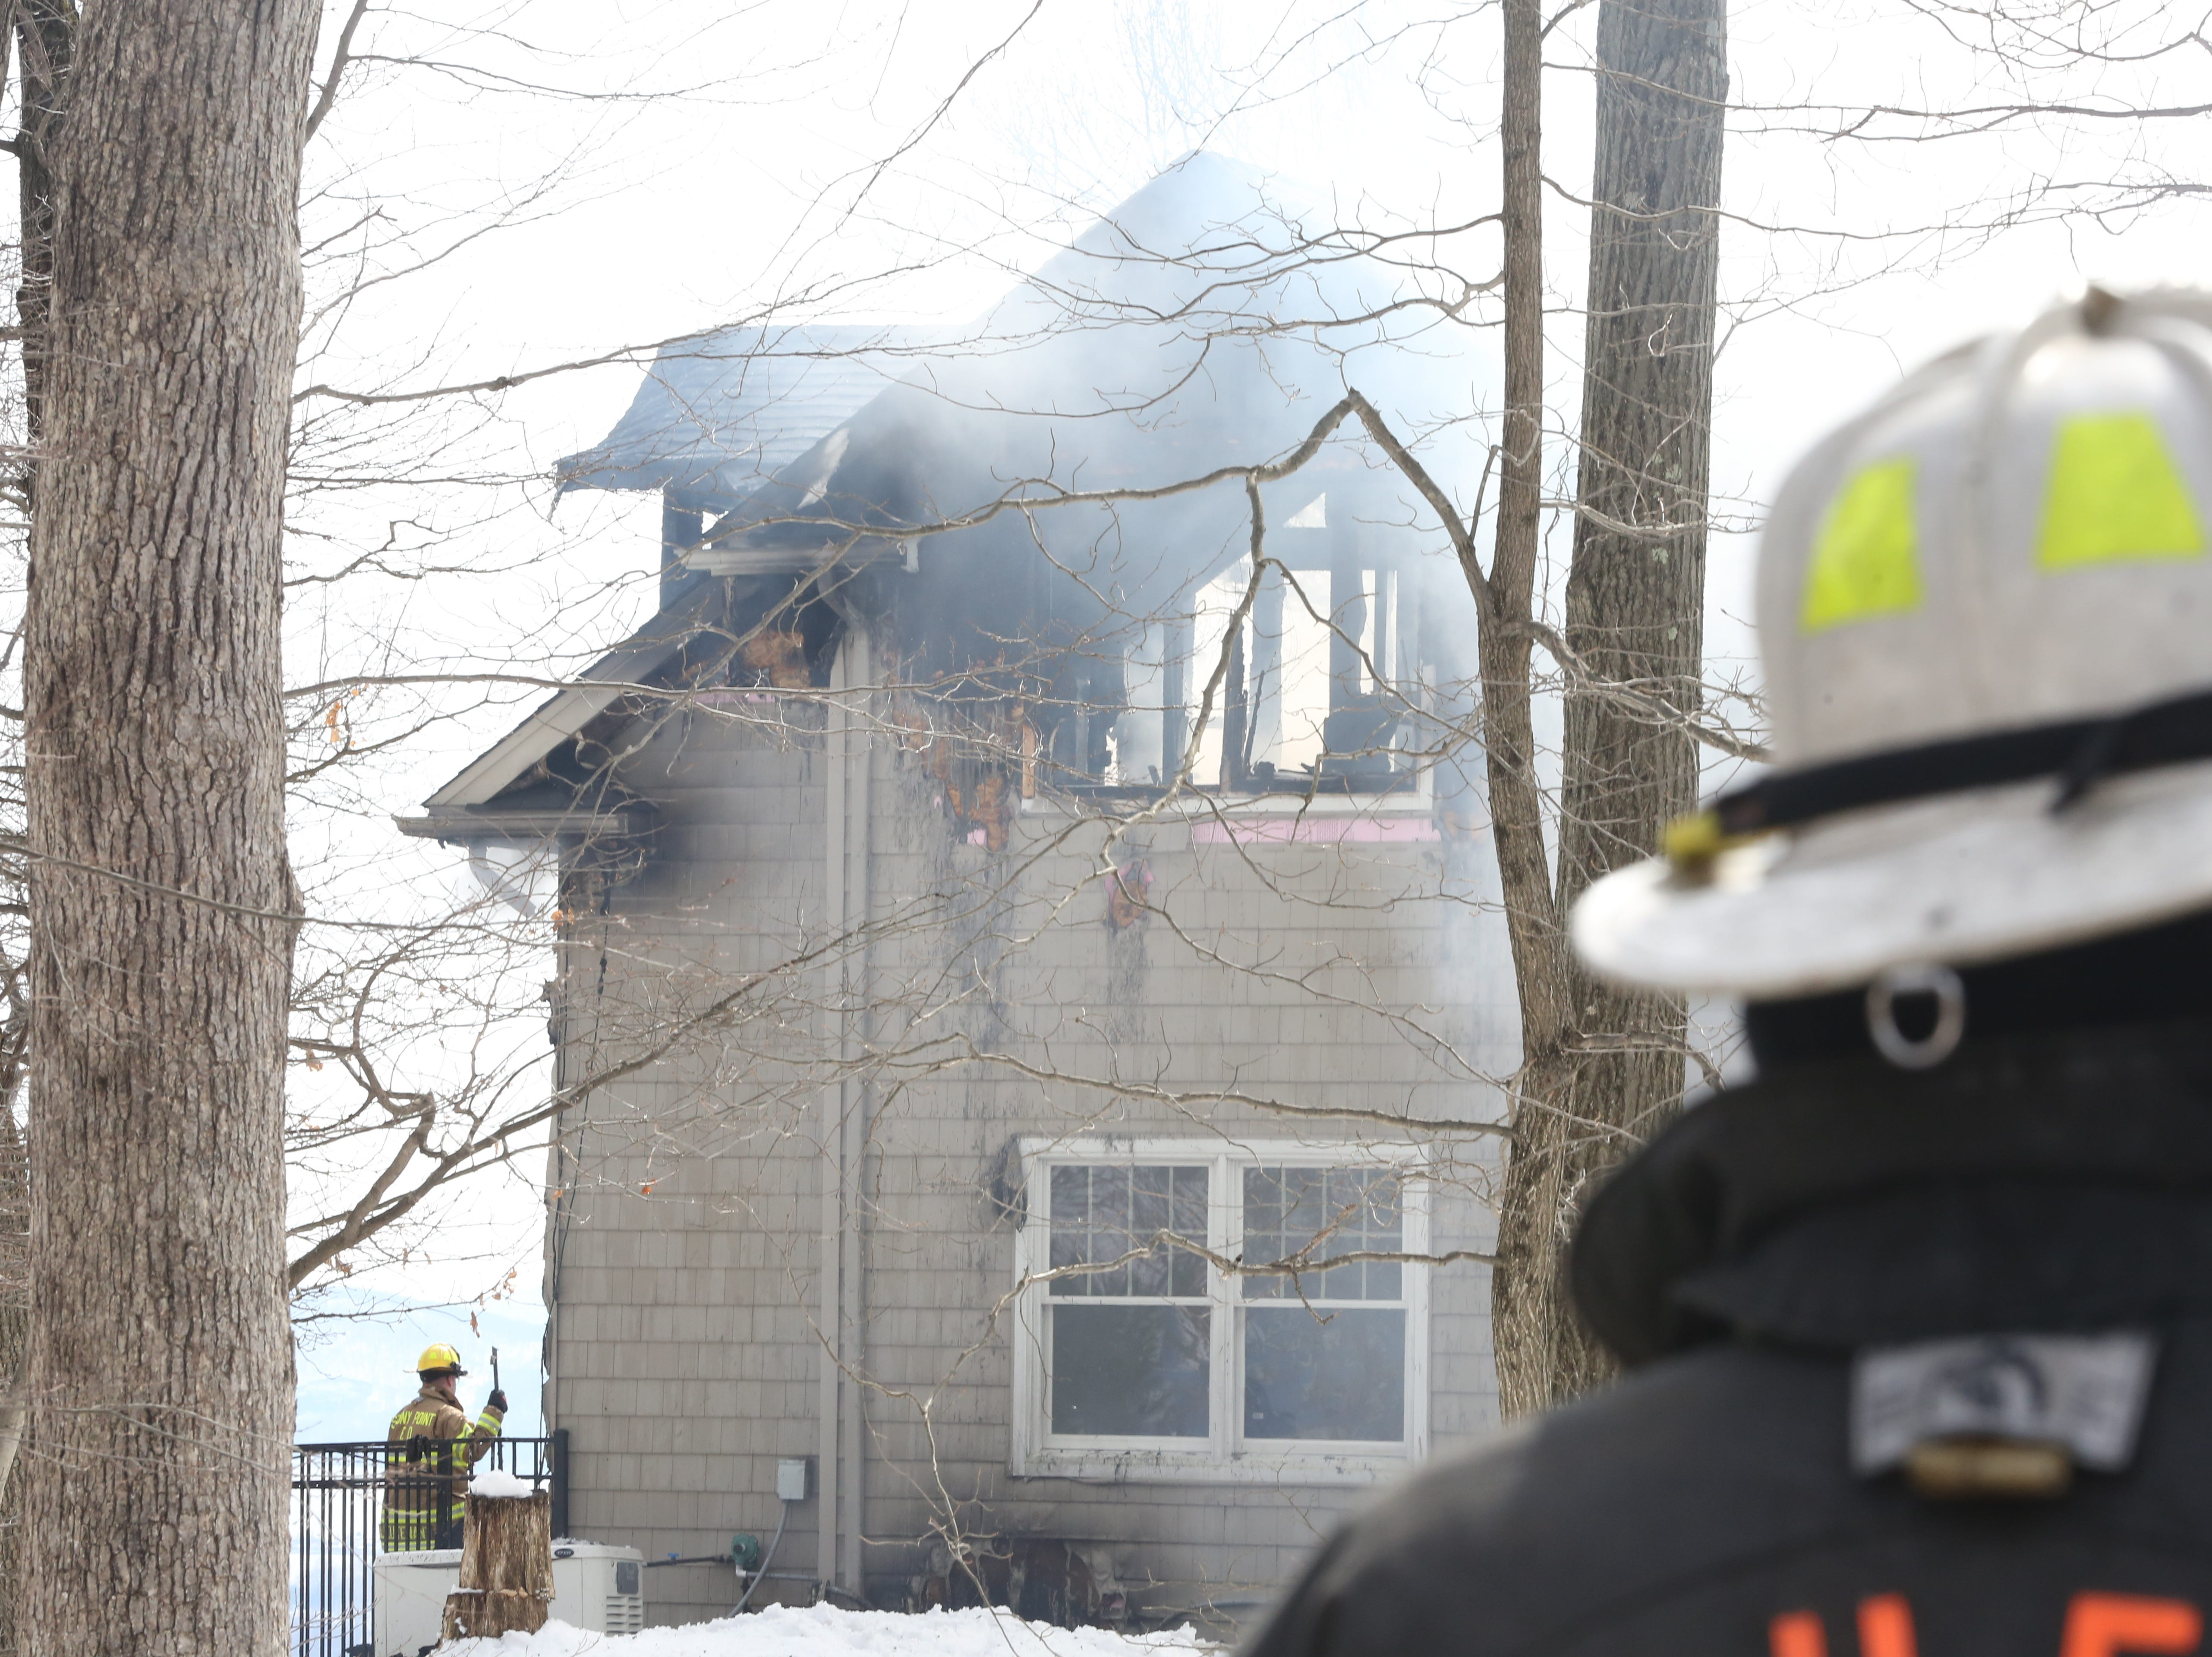 Firefighters battle a house fire on Soluri Lane in Tomkins Cove on March 8, 2019.